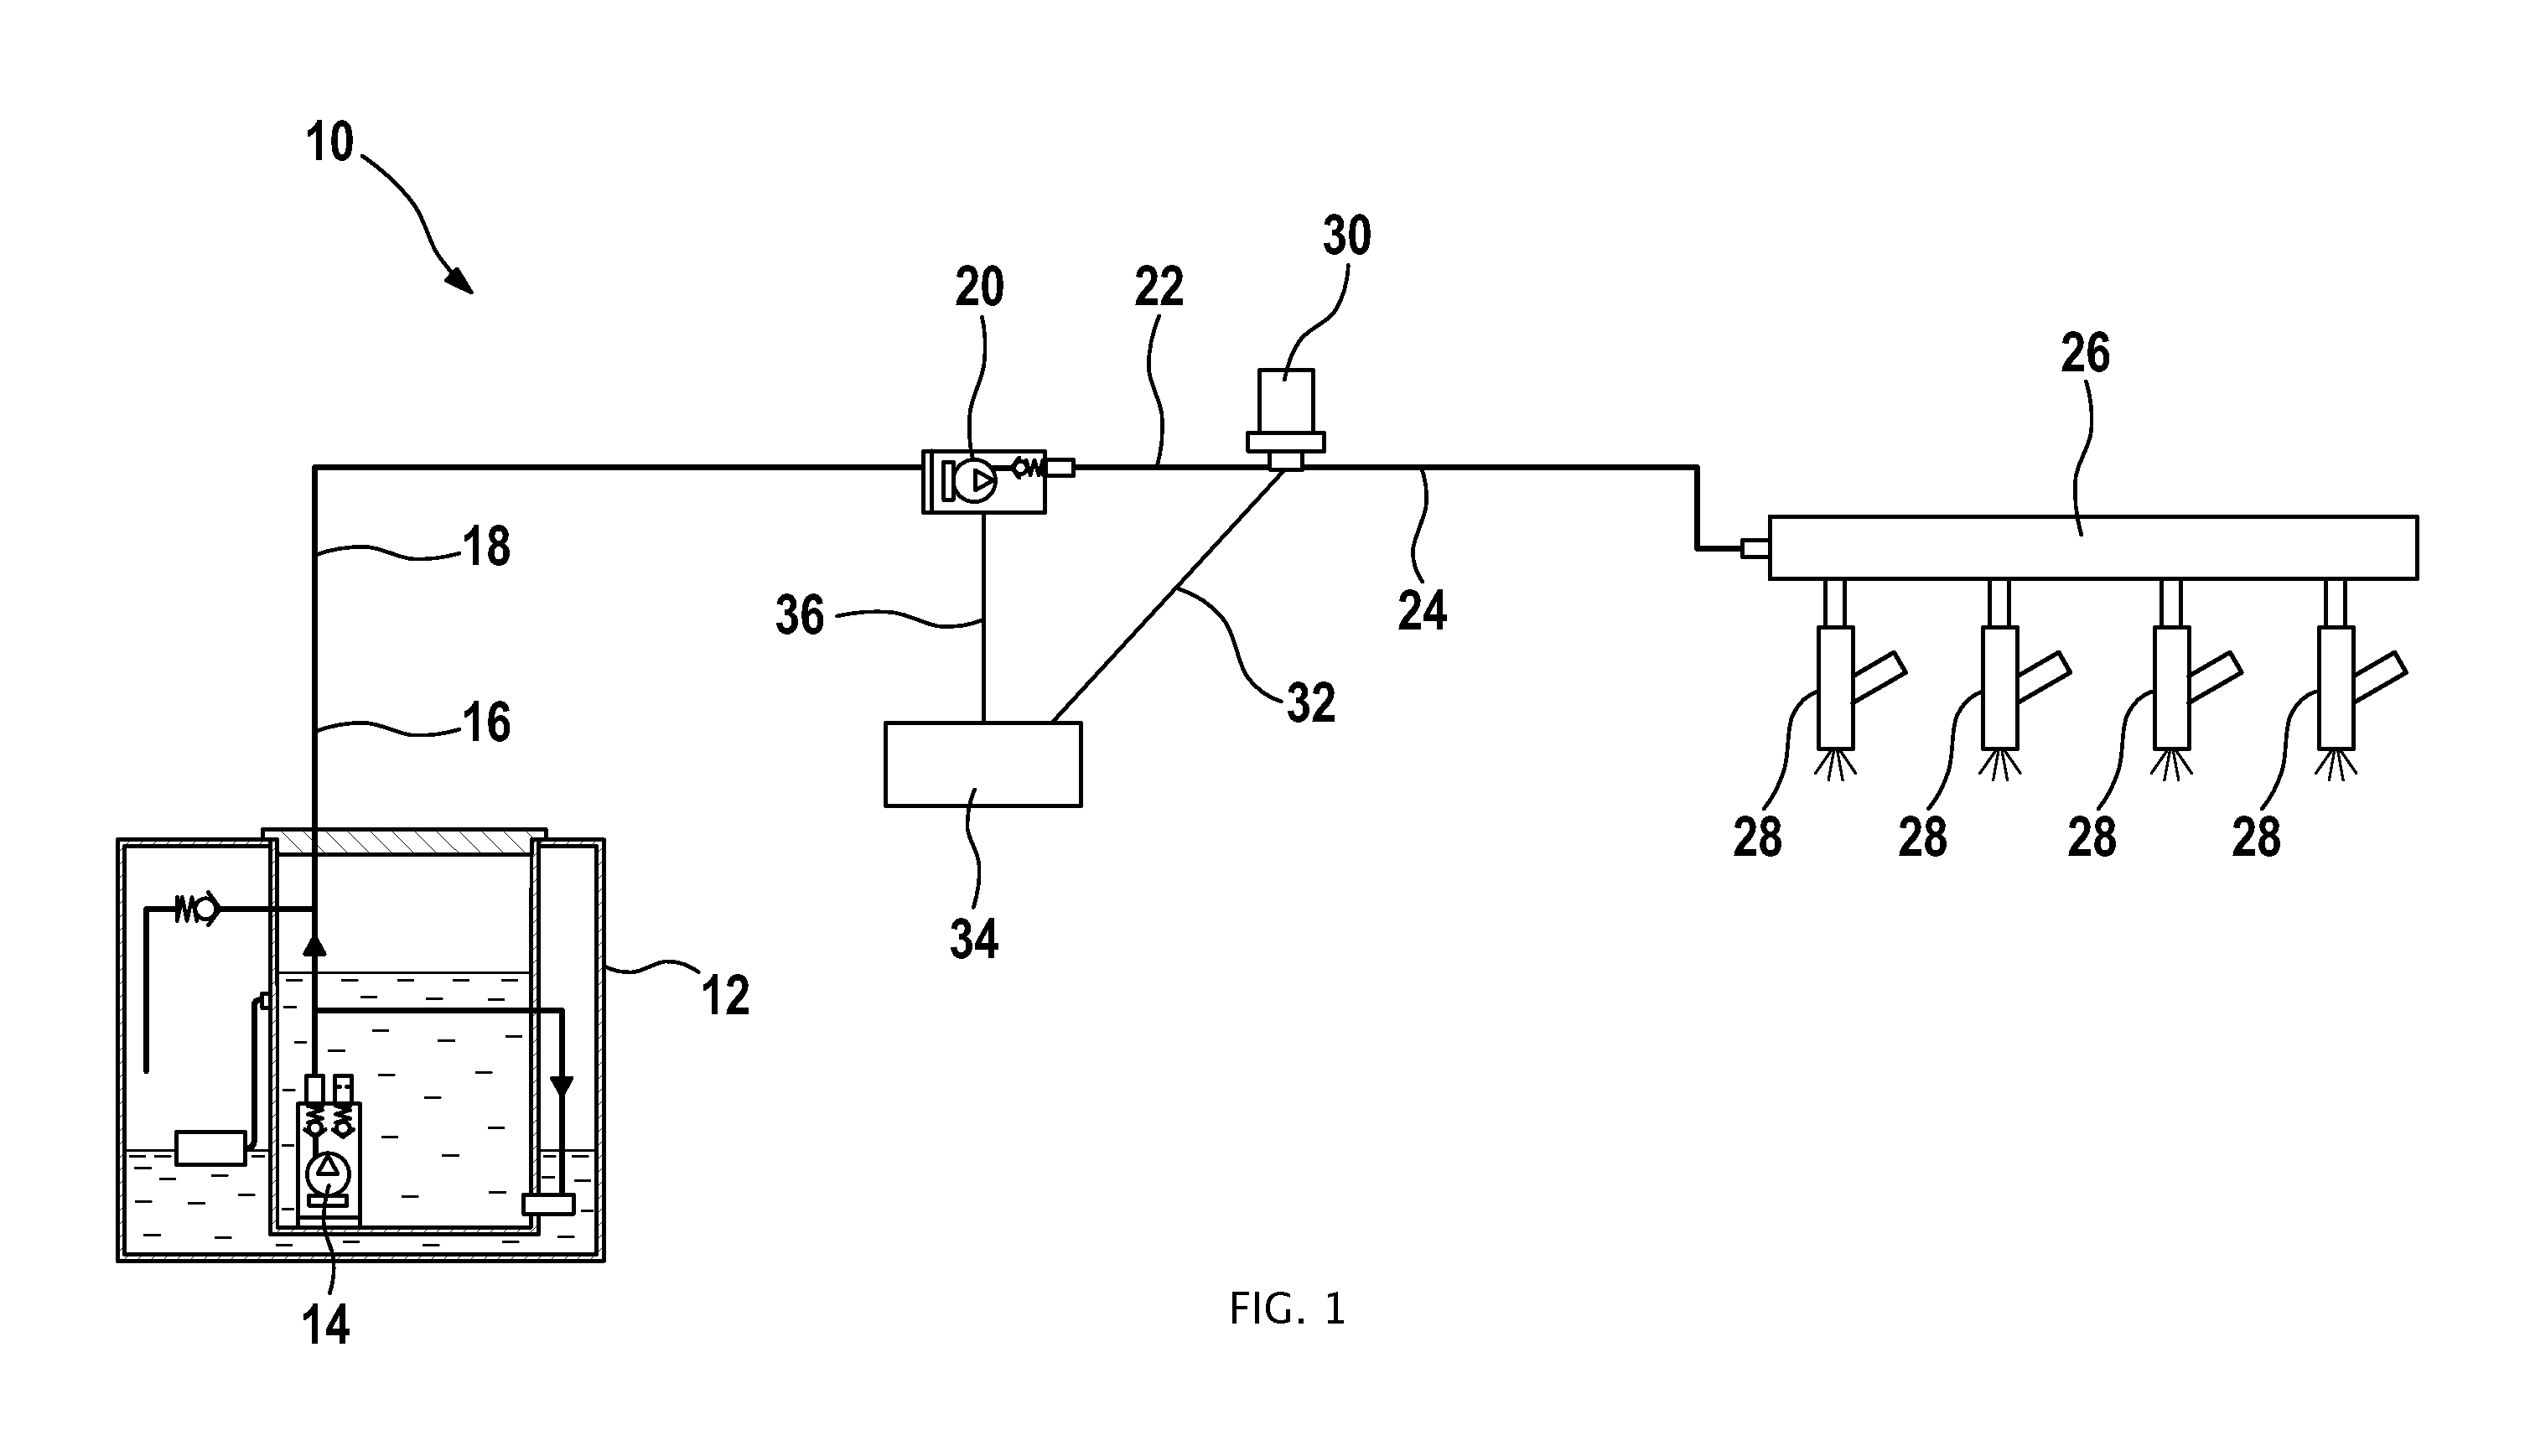 medium resolution of wo2012089364a1 fuel supply system of an internal combustion engine with direct fuel injection